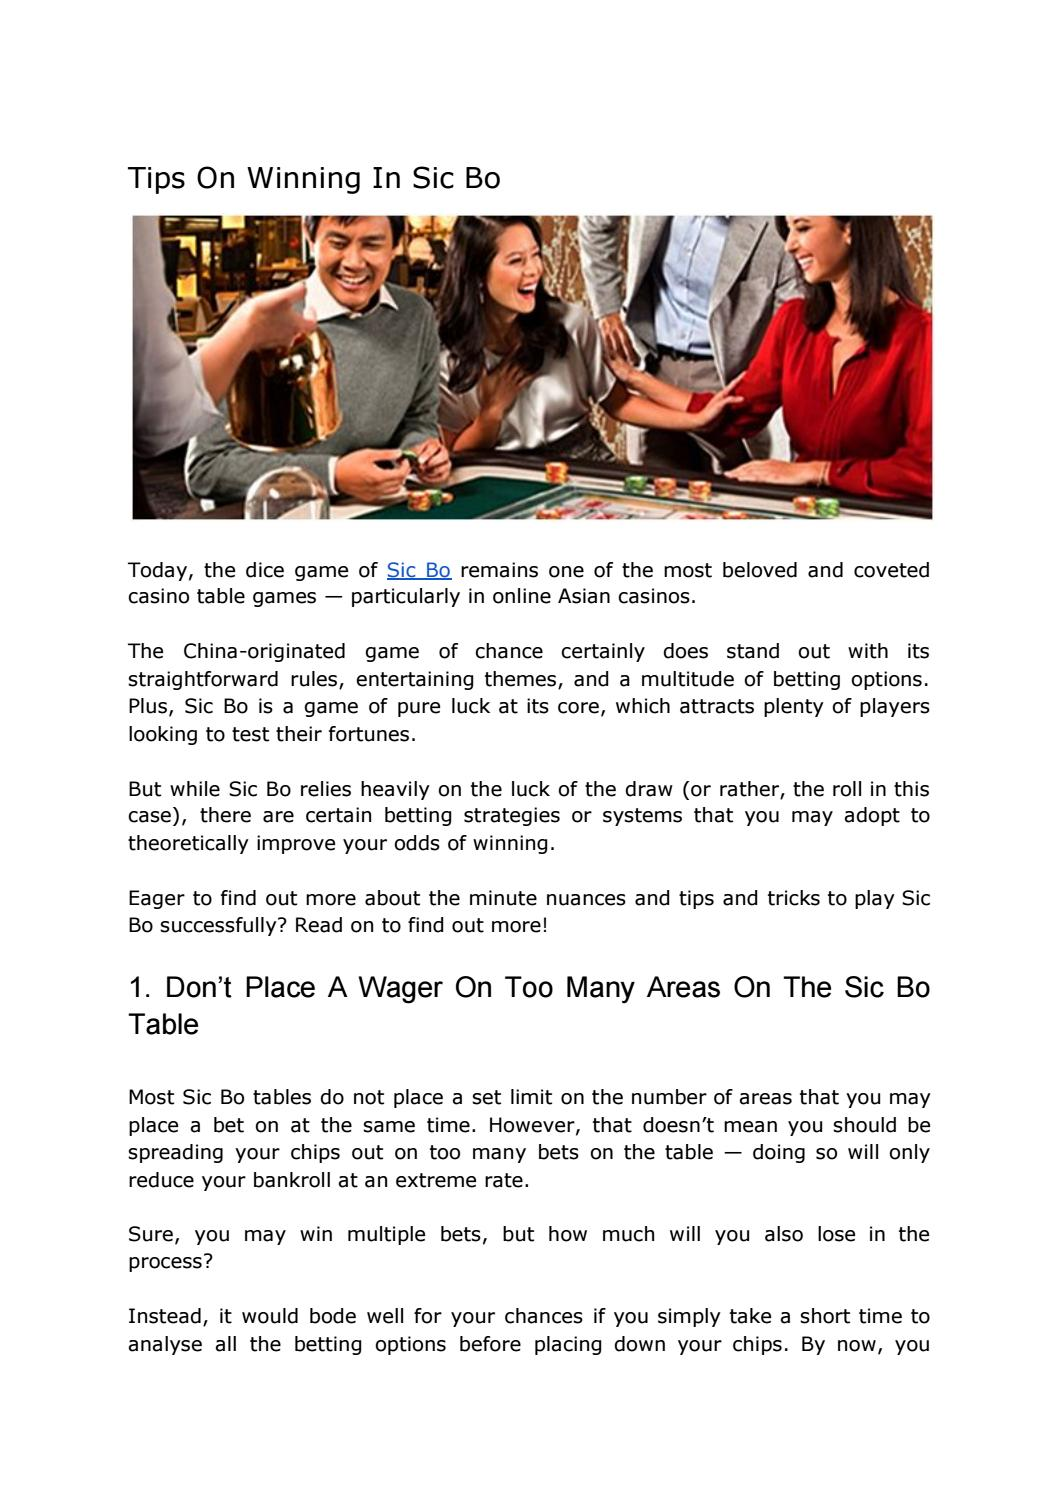 Tips On Winning In Sic Bo By Mymega888 Issuu